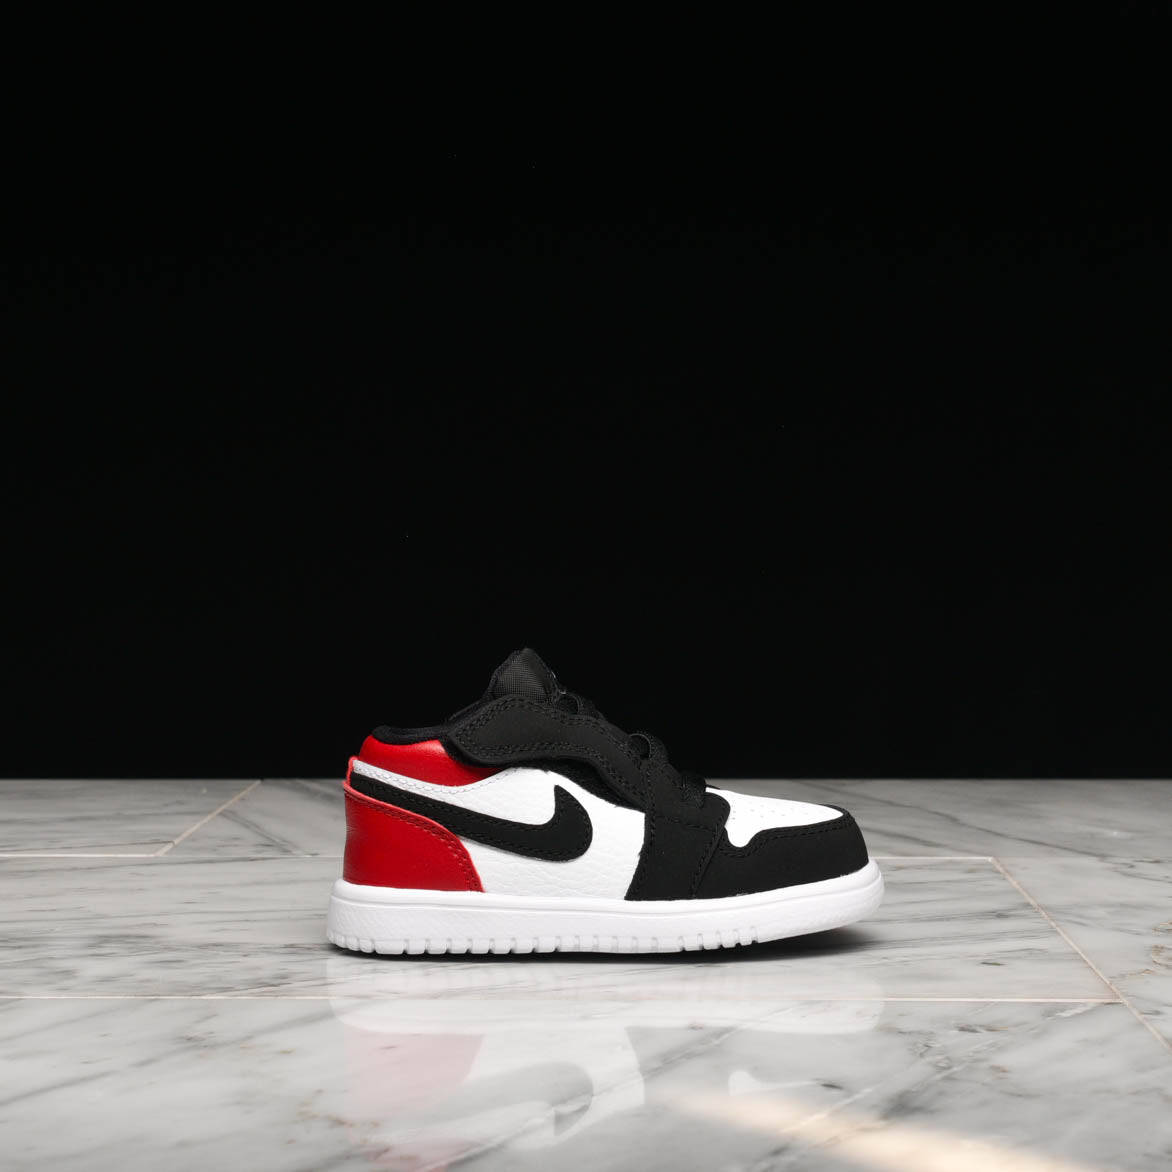 first rate 4f2e9 54be6 JORDAN 1 LOW ALT (TD) - WHITE / BLACK - GYM RED